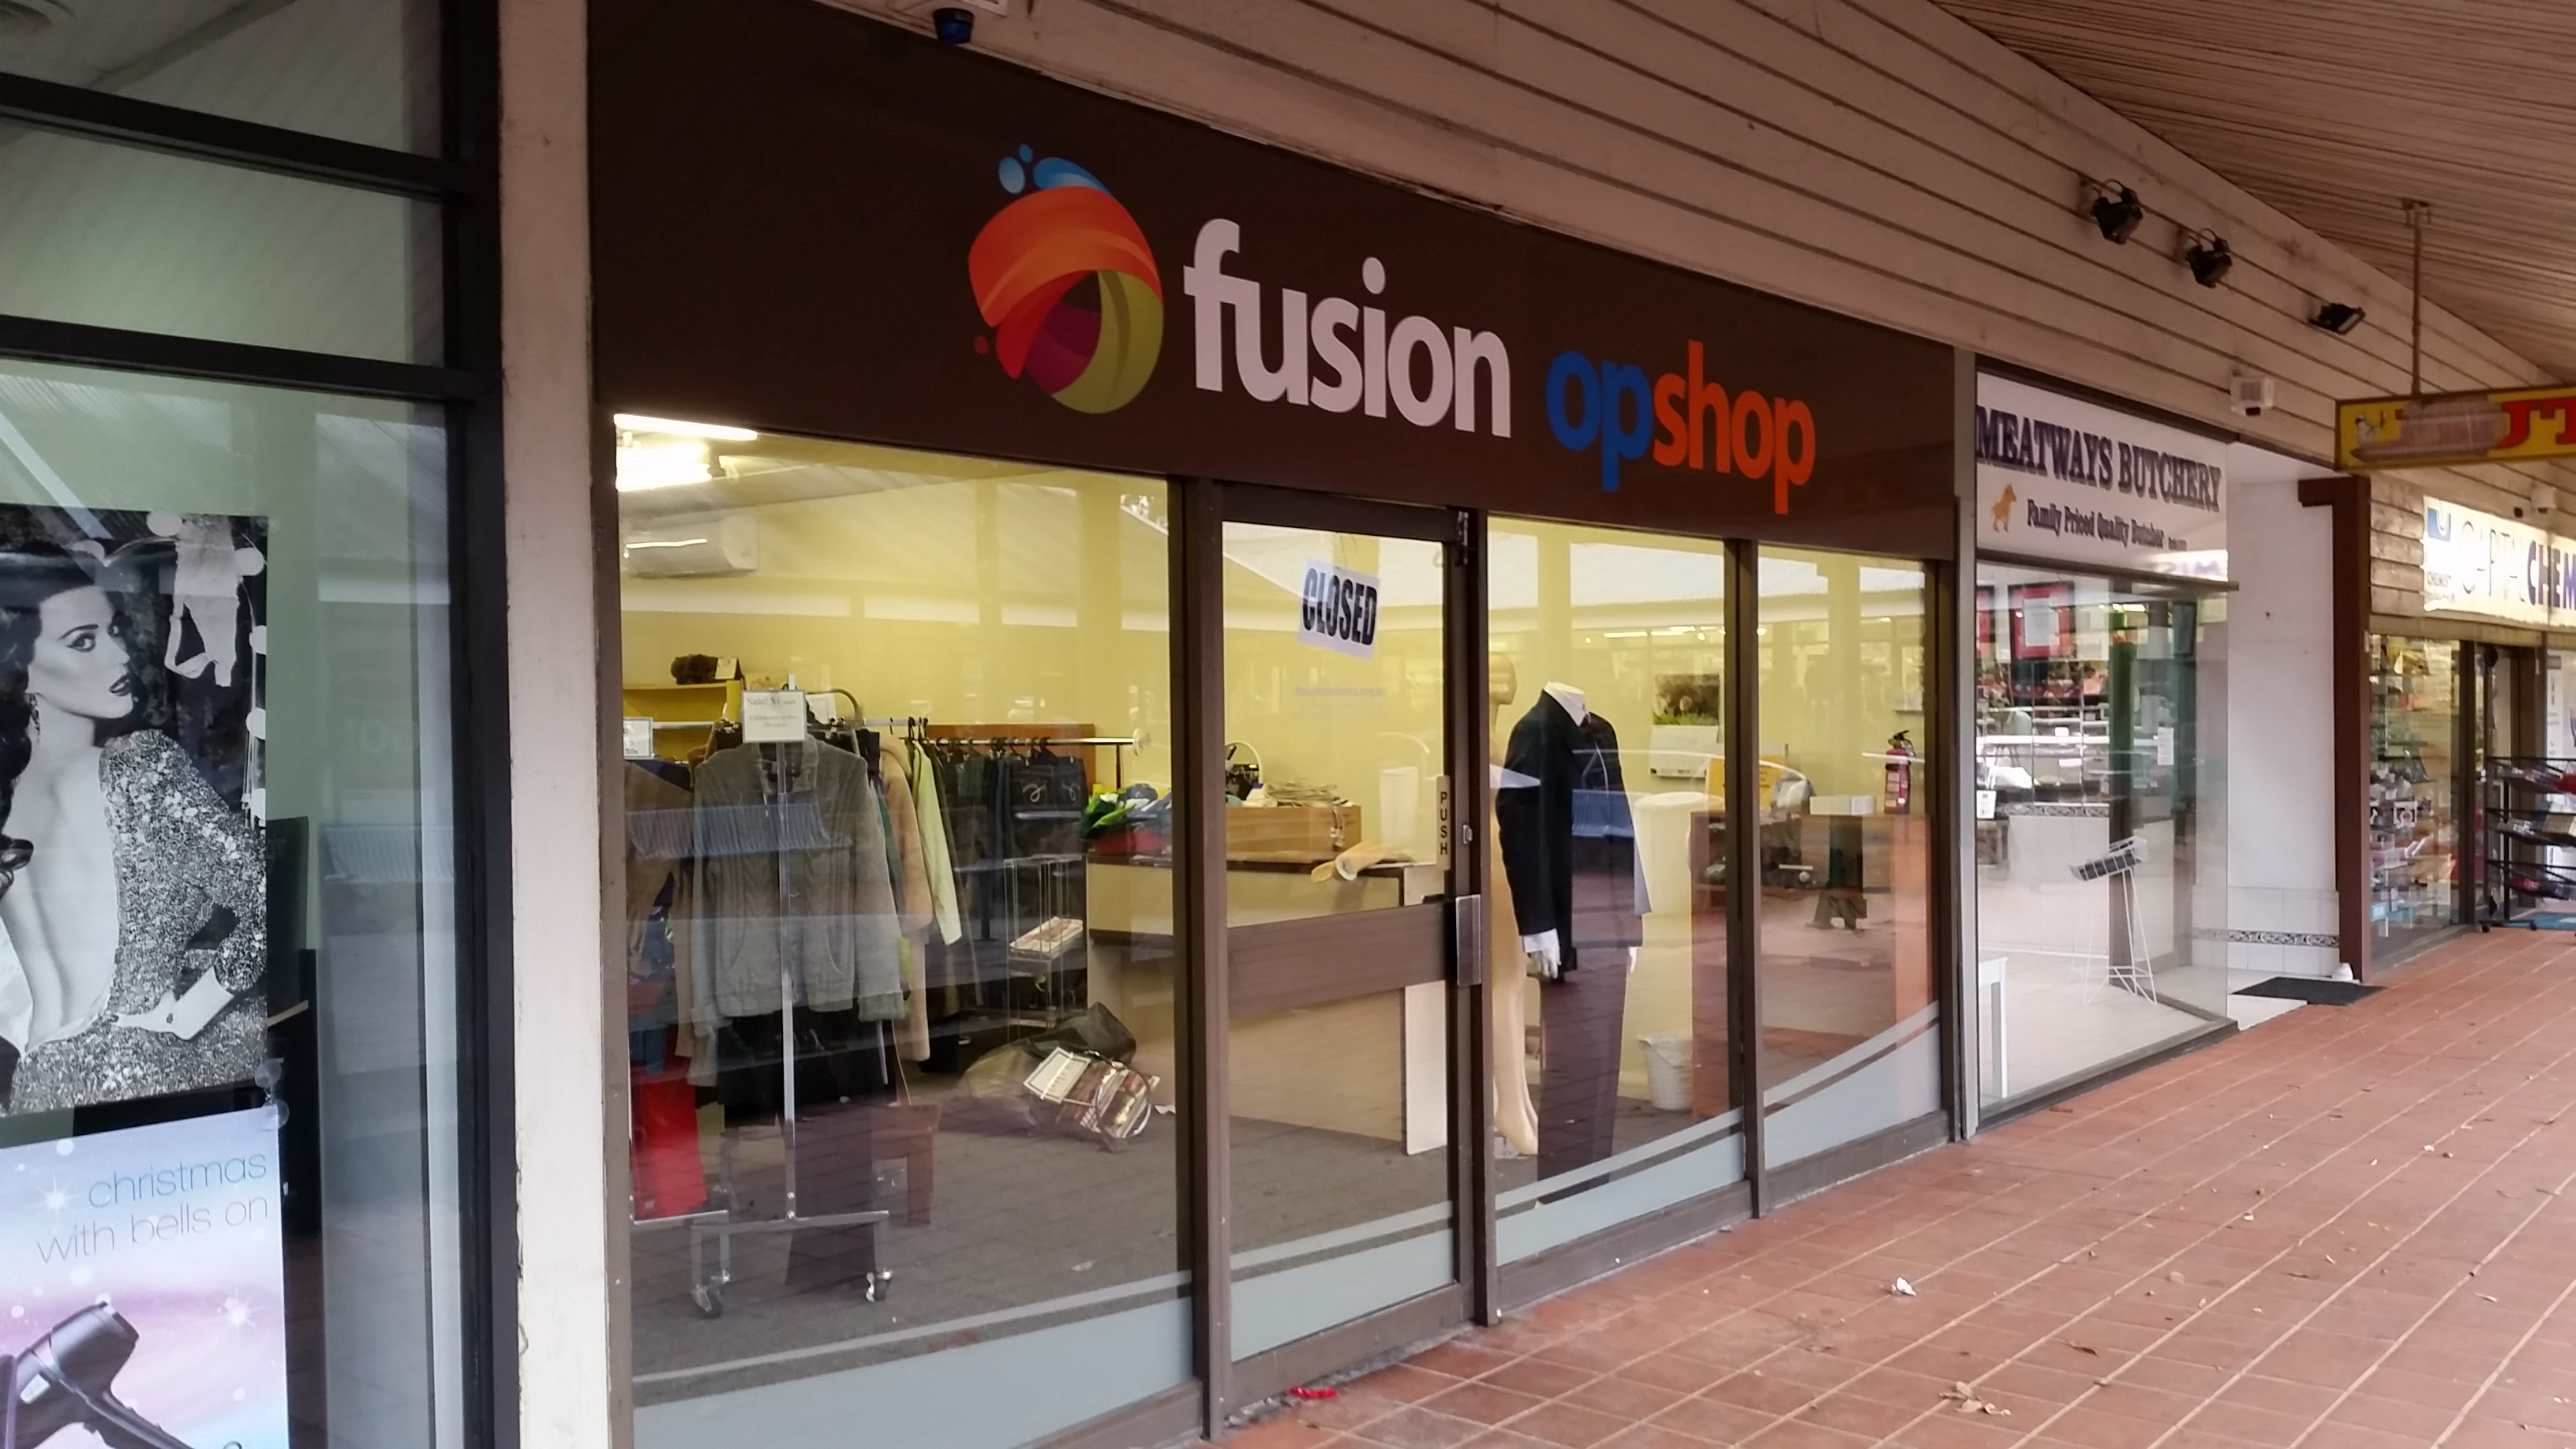 Everyone is invited to Fusion Op Shop's Official Opening Celebration on the 3rd December